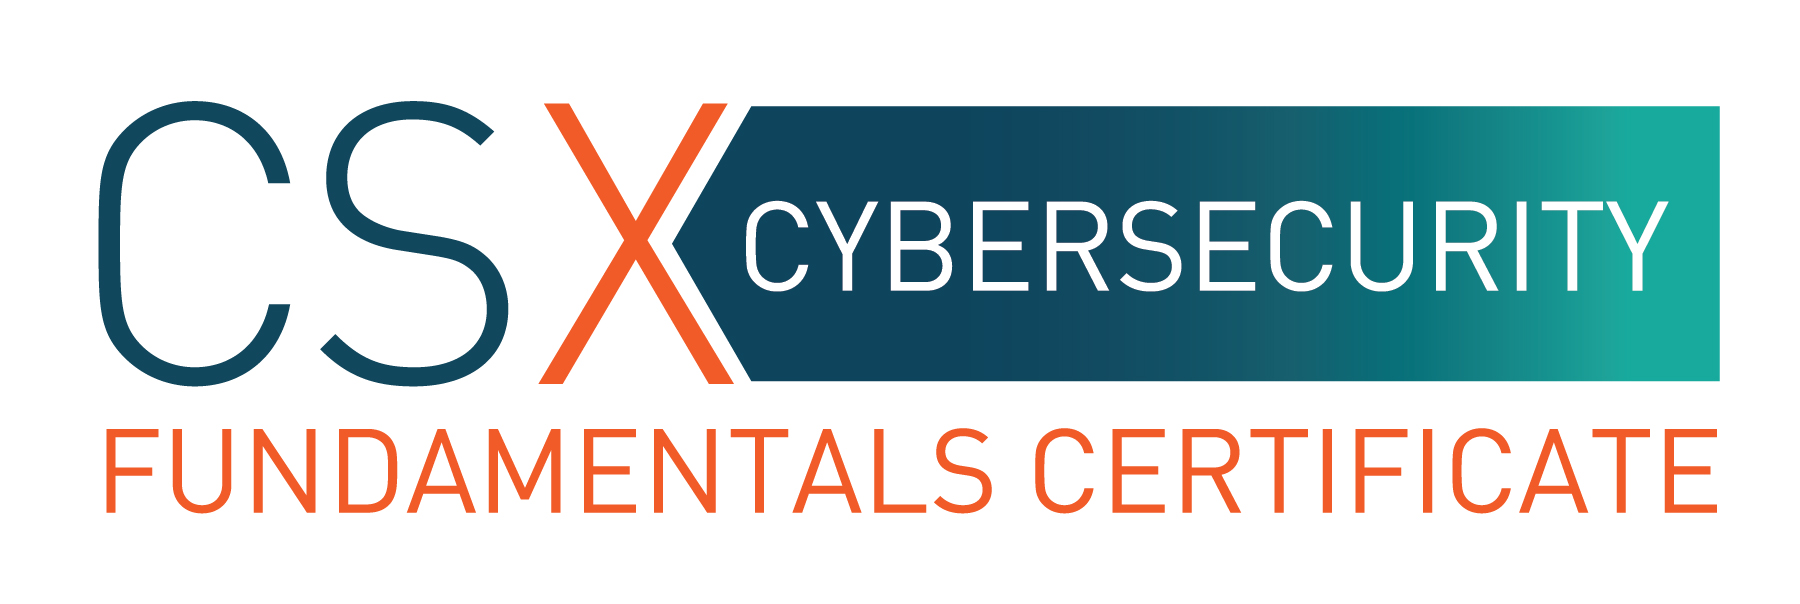 CSX CYBERSECURITY FUNDAMENTALS TRAINING (MULTI-DAY EVENT